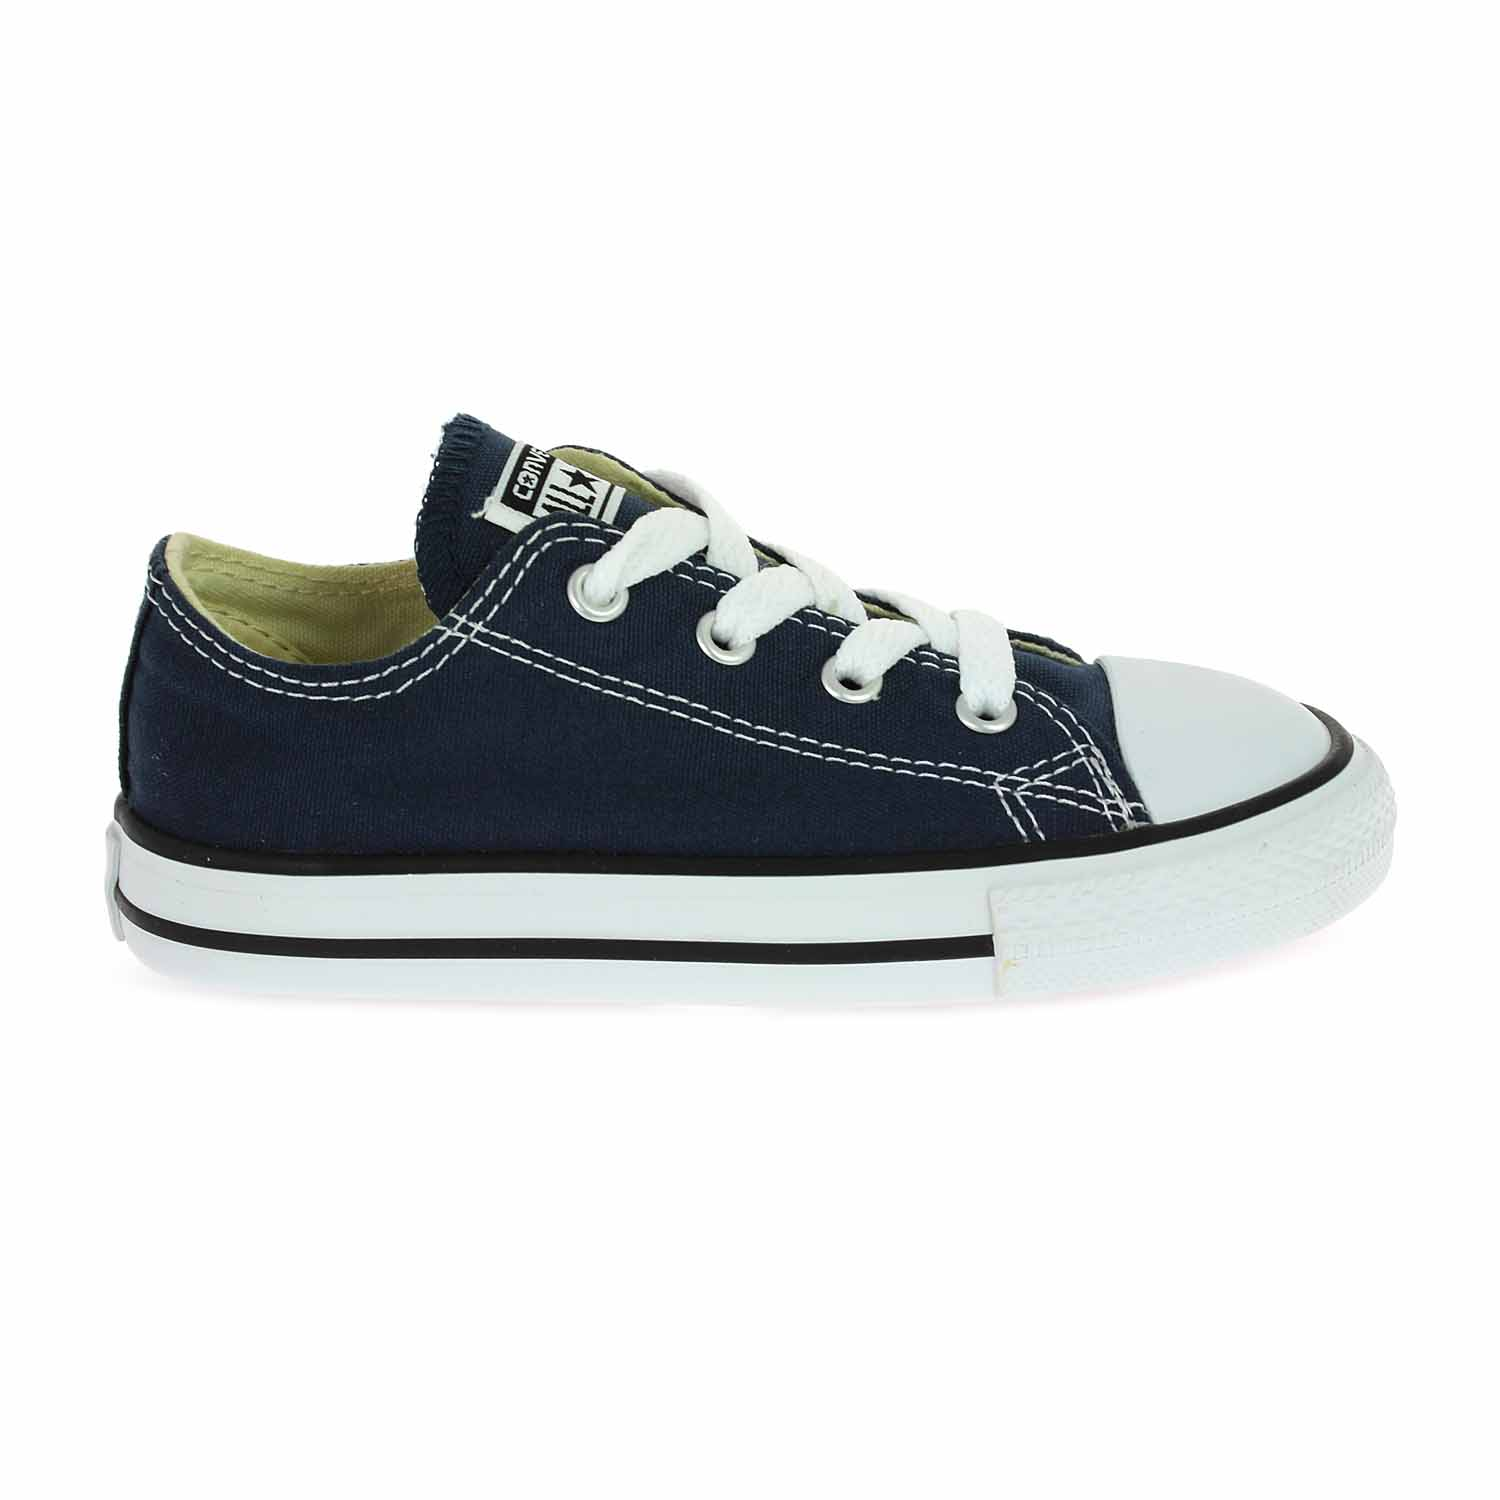 Converse All Star Chuck Taylor I ( 7J237C ) παπούτσια    παιδί    βρεφικά  size 17 27